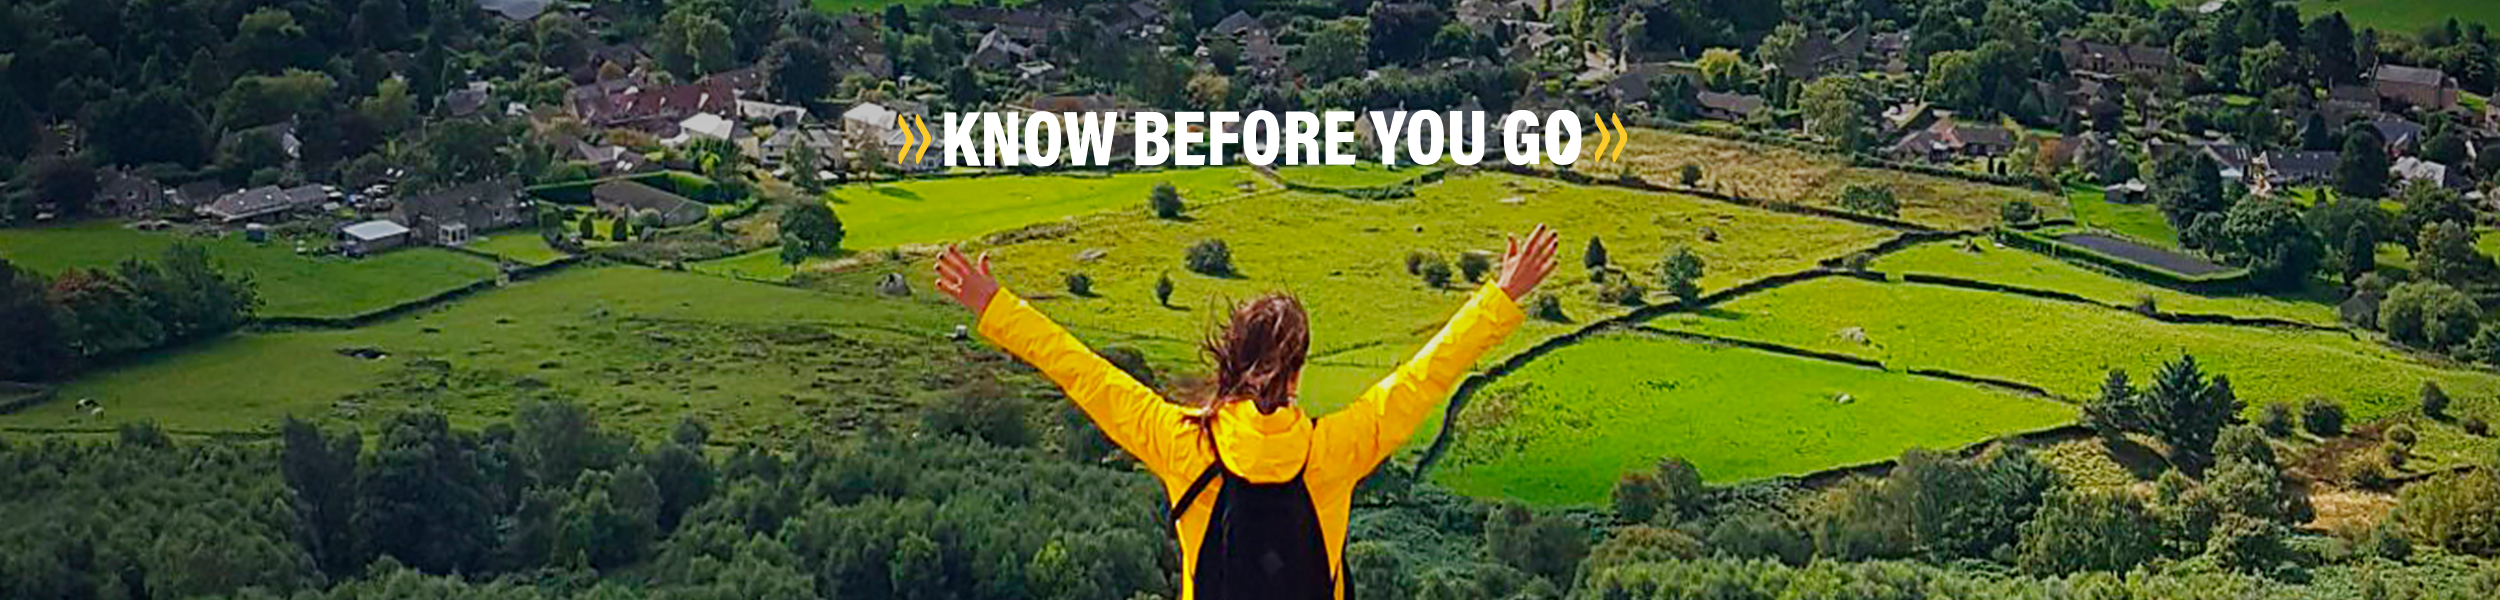 Know Before You Go campaign header